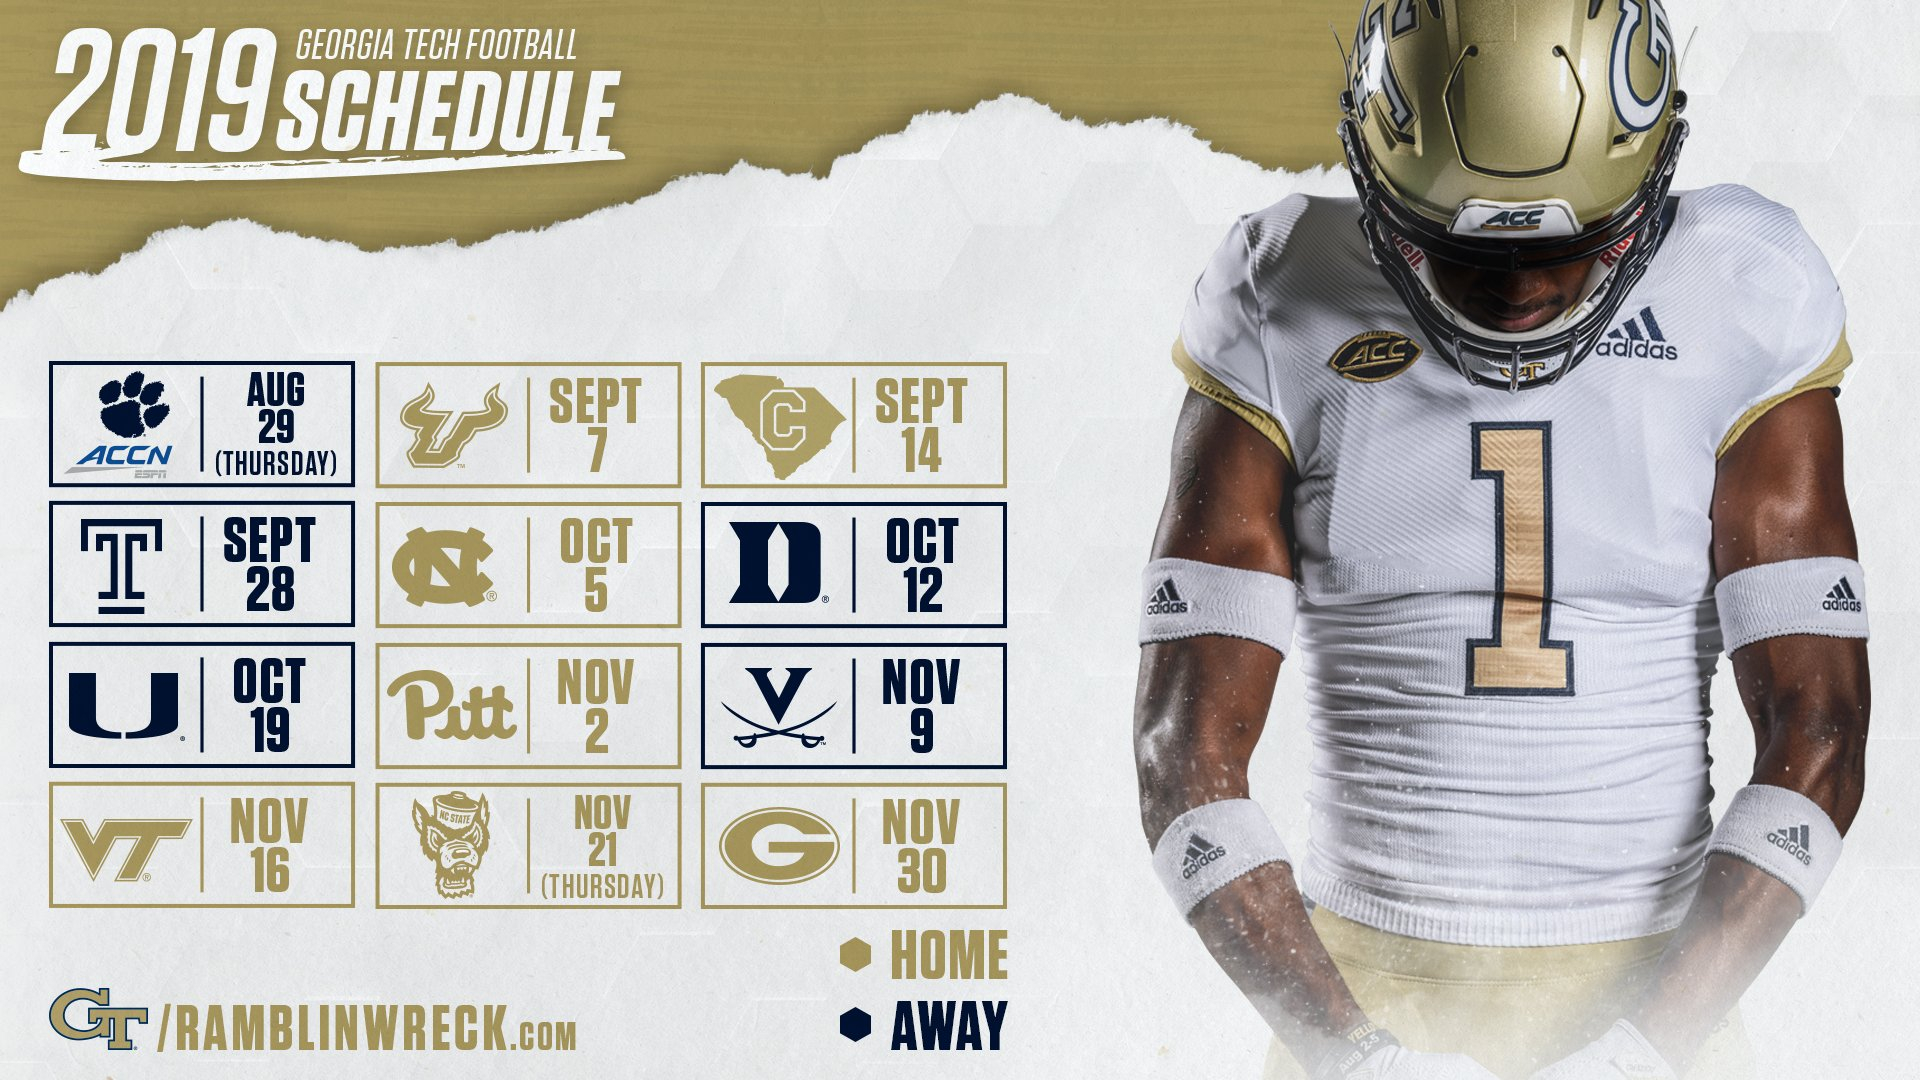 2019 Football Schedule, Ticket Prices Finalized – Football — Georgia Uga Academic Calendar 2019-20